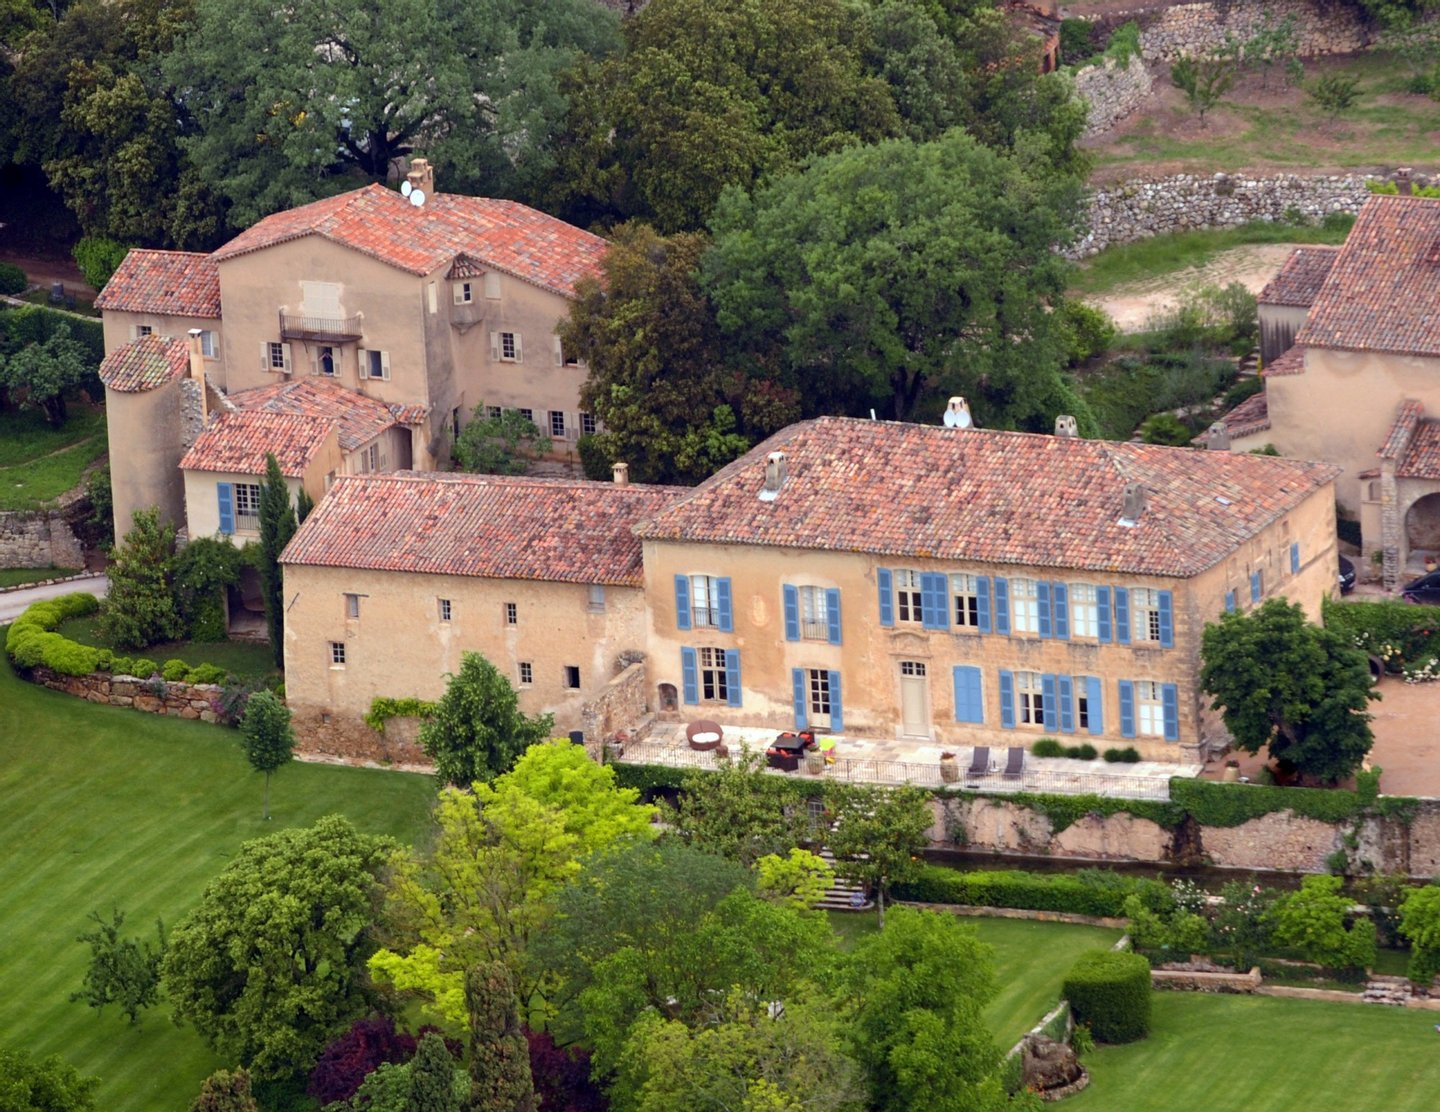 (FILES) A file picture taken on May 31, 2008 in Le Val, southeastern France, shows an aerial view of the Chateau Miraval, a vineyard estate then owned by US businessman Tom Bove, and bought in 2008 by US actors Brad Pitt and Angelina Jolie. The French weekly business newspaper Challenges reported on February 13, 2013 that Pitt and Jolie had decided to take over the exploitation of their vineyard from an outsourced company, in partnership for the grape growing and the winemaking of their 500-hectare wine estate with Marc Perrin and his family -- who produce such wines as Cote du Rhone, Chateauneuf du Pape and Gigondas. The Chateau Miraval wine estate produces wines from Cotes de Provence and Coteaux-Varois-en-Provence. AFP PHOTO MICHEL GANGNE (Photo credit should read MICHEL GANGNE/AFP/Getty Images)